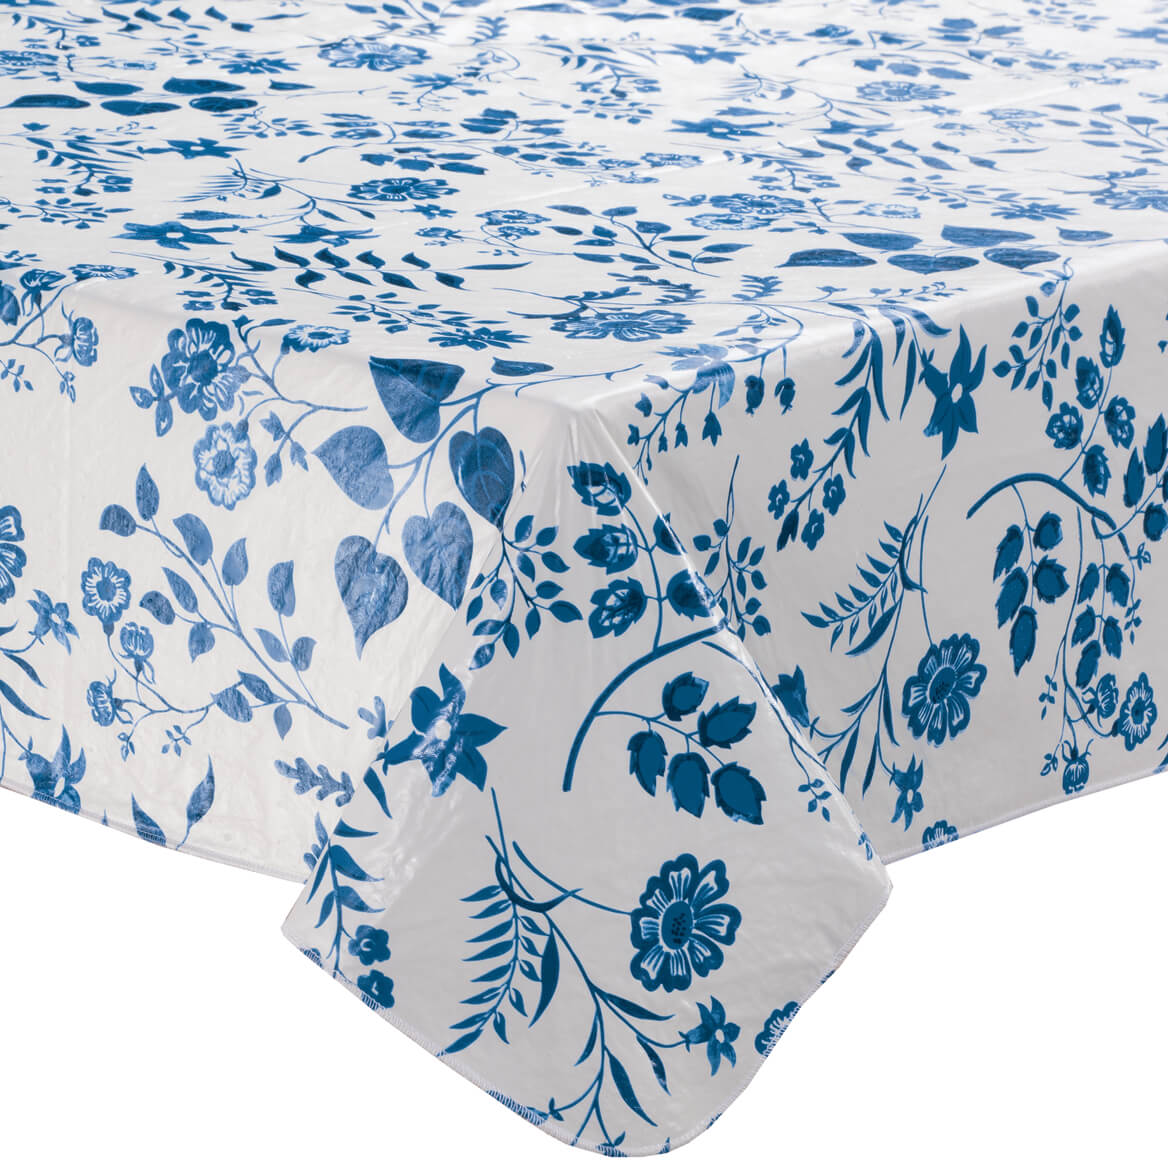 Flowing Flowers Vinyl Tablecover By Home-Style Kitchen™-355907